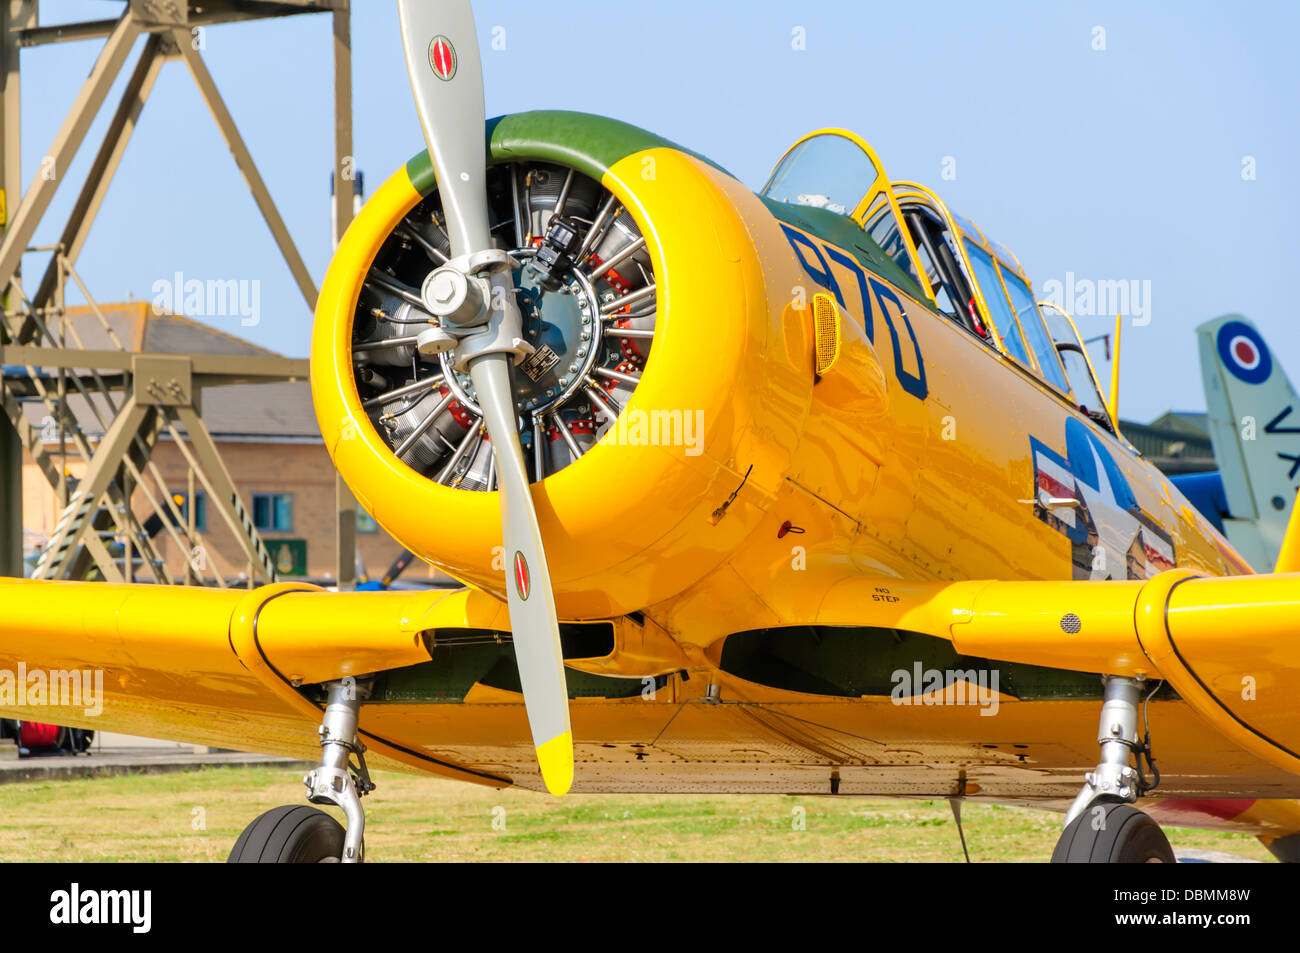 Close-up view of the nose of a North American T6 Texan showing the cylinders of its radial piston engine - Stock Image